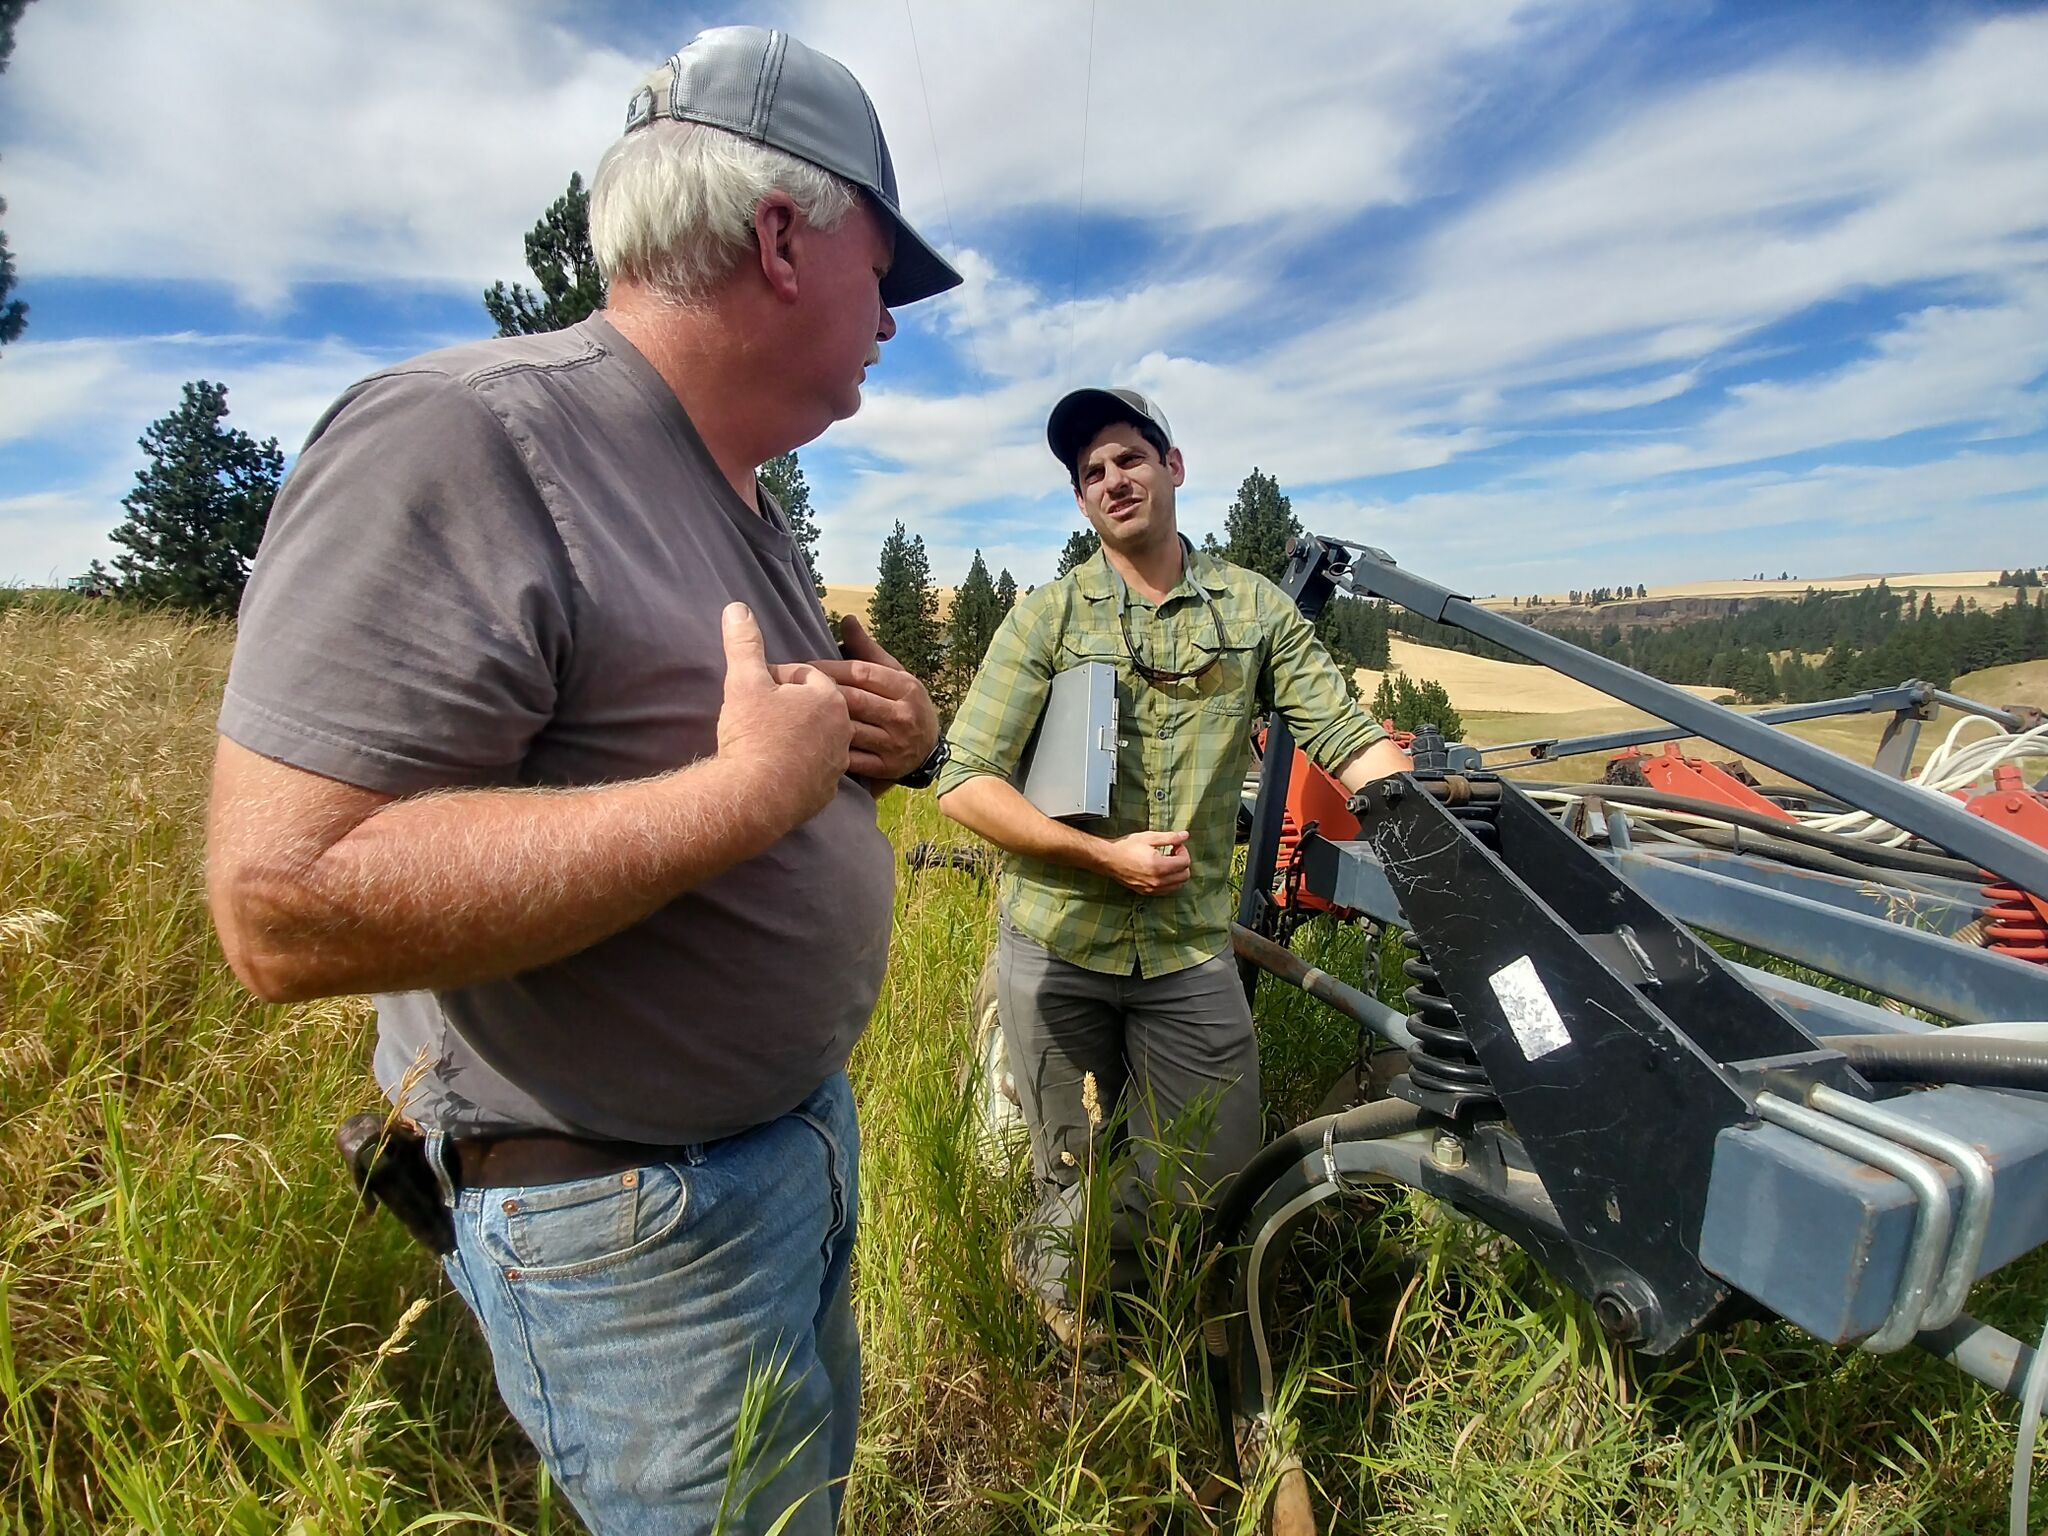 Conservation Coordinator works with local farmer about adopting no-till practices on their operation.